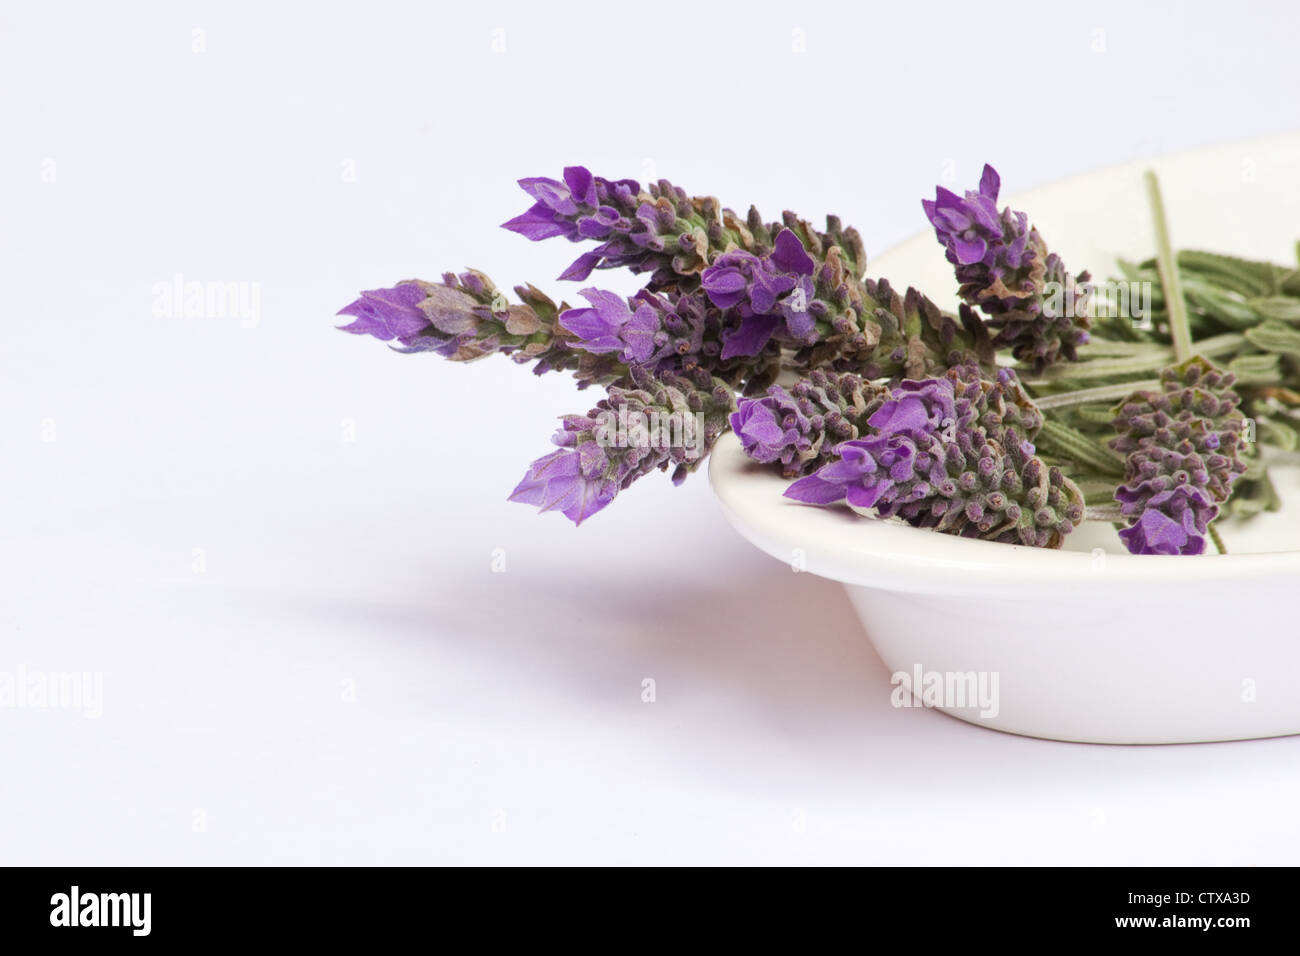 Lavender flowers in a white bowl on white background - Stock Image